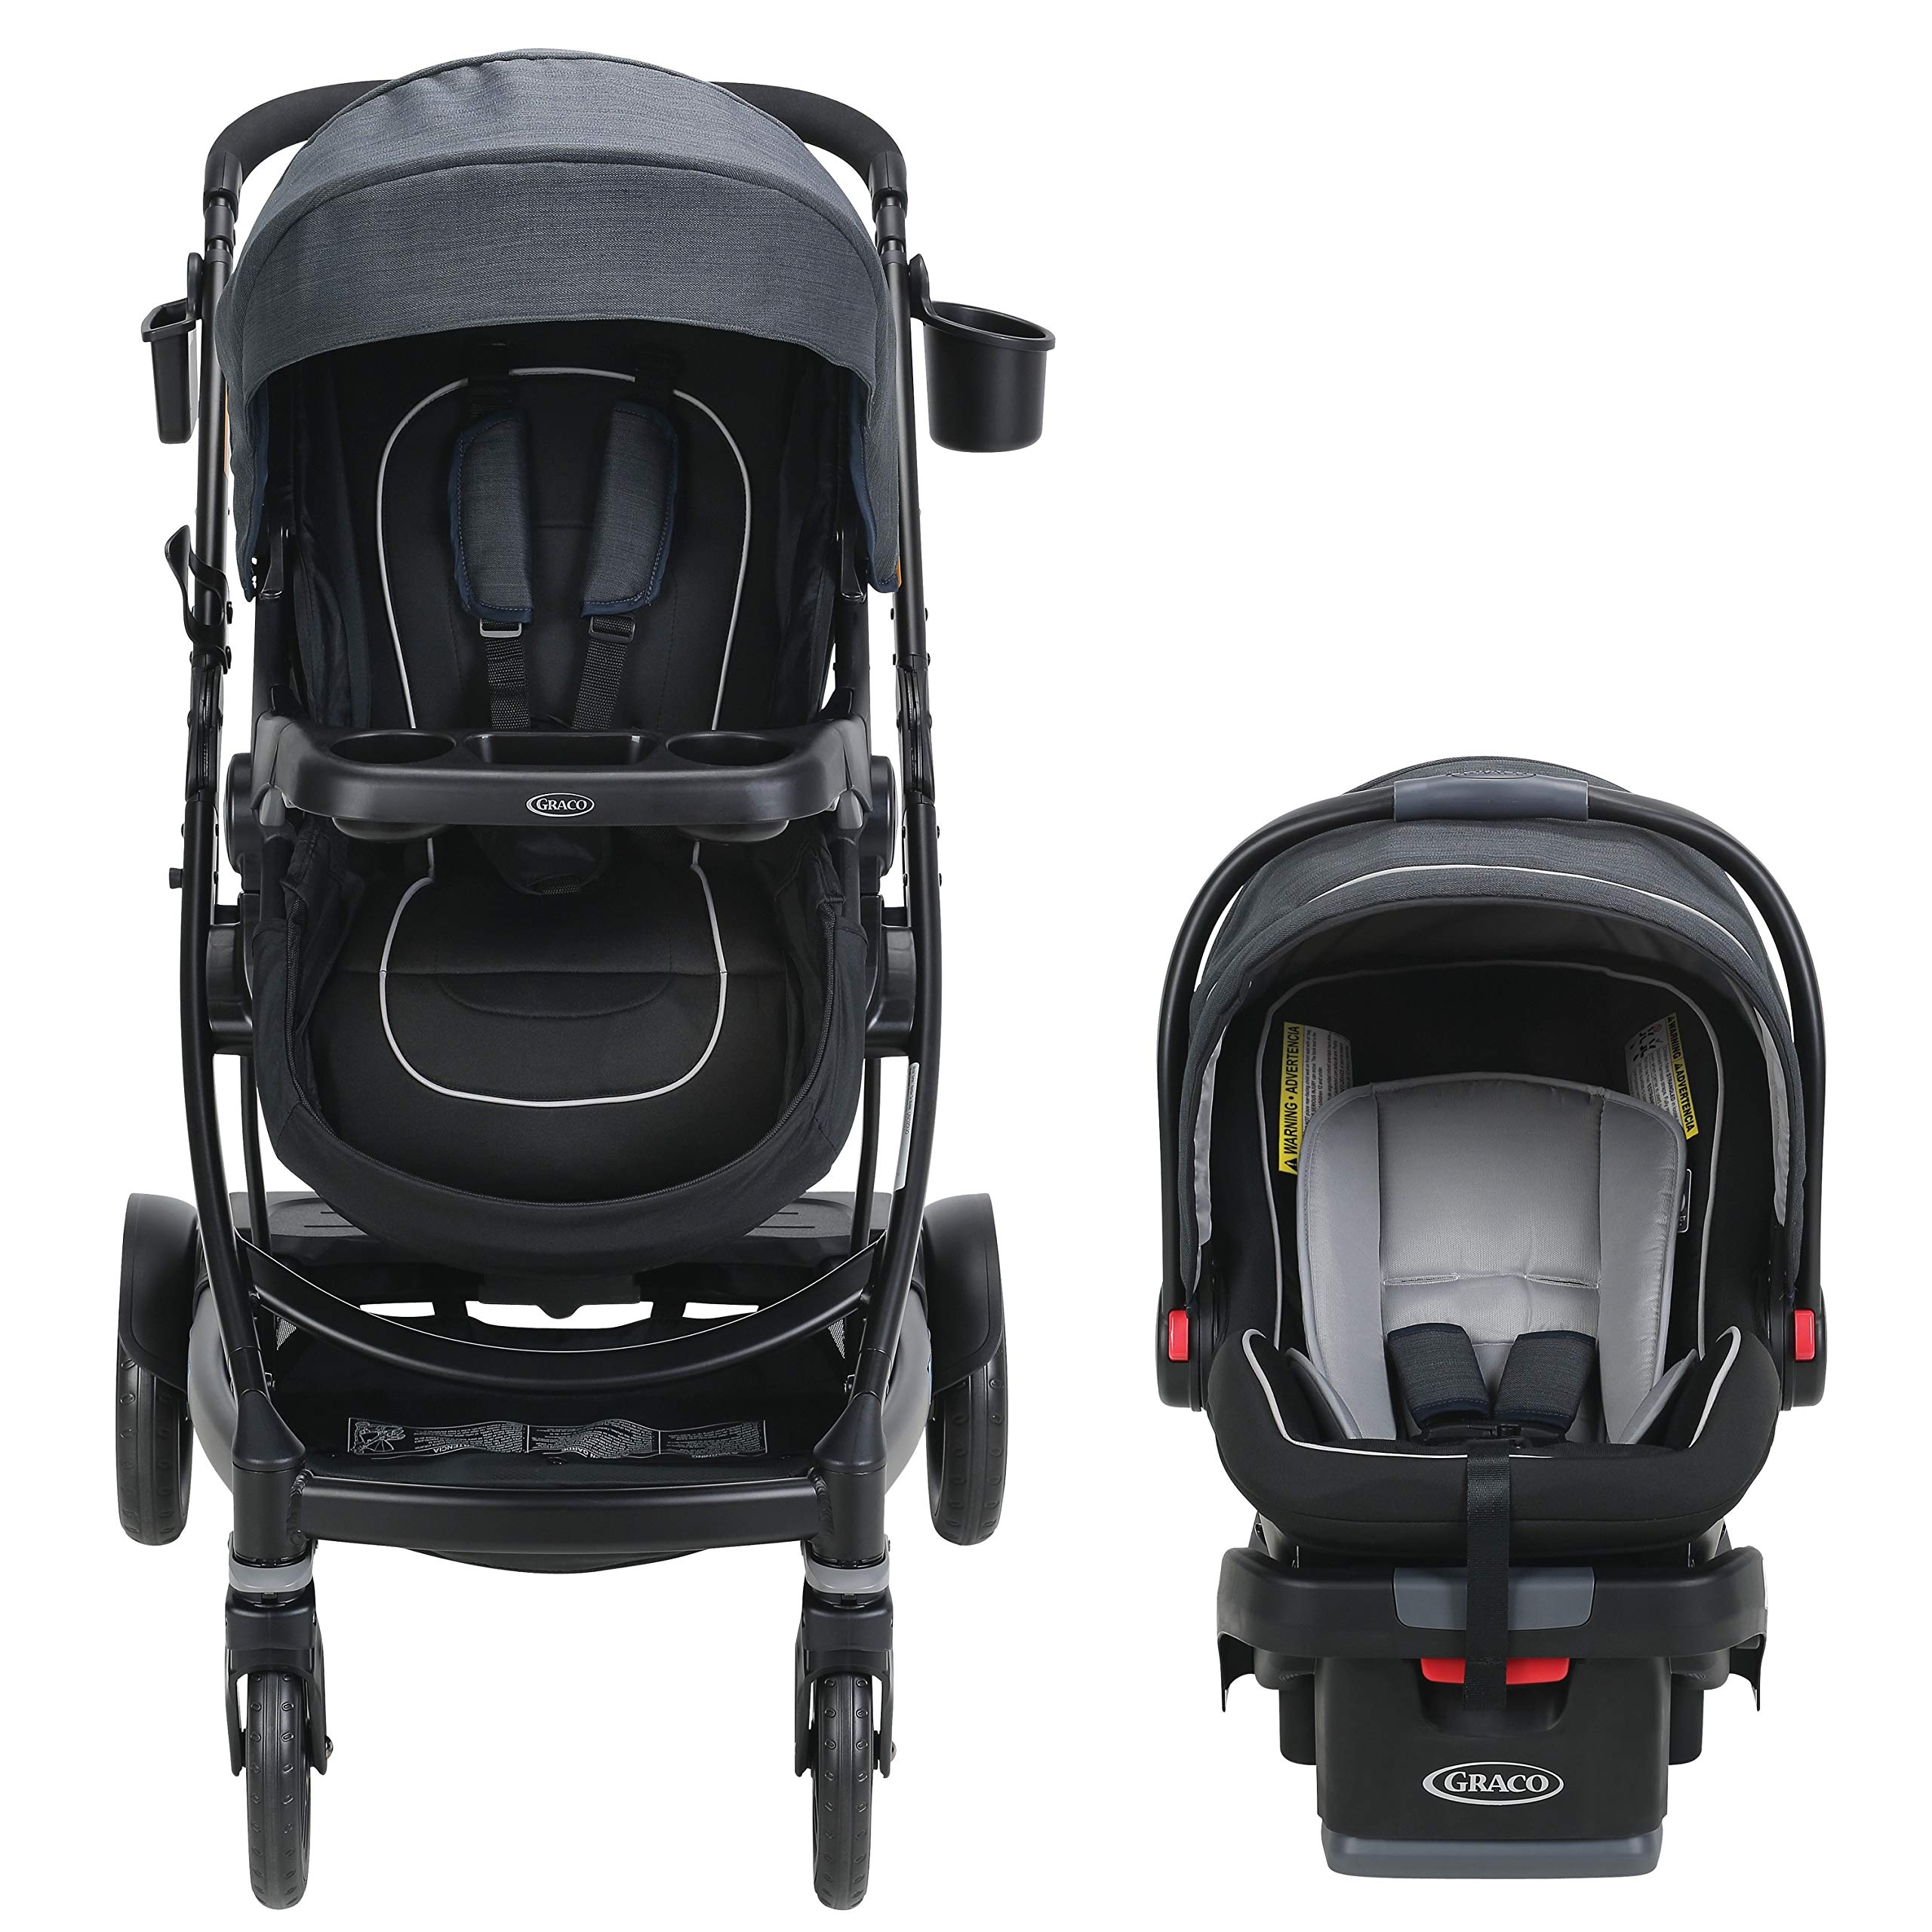 Graco UNO2DUO 2065075 Travel System Stroller, Reece by Graco (Image #2)